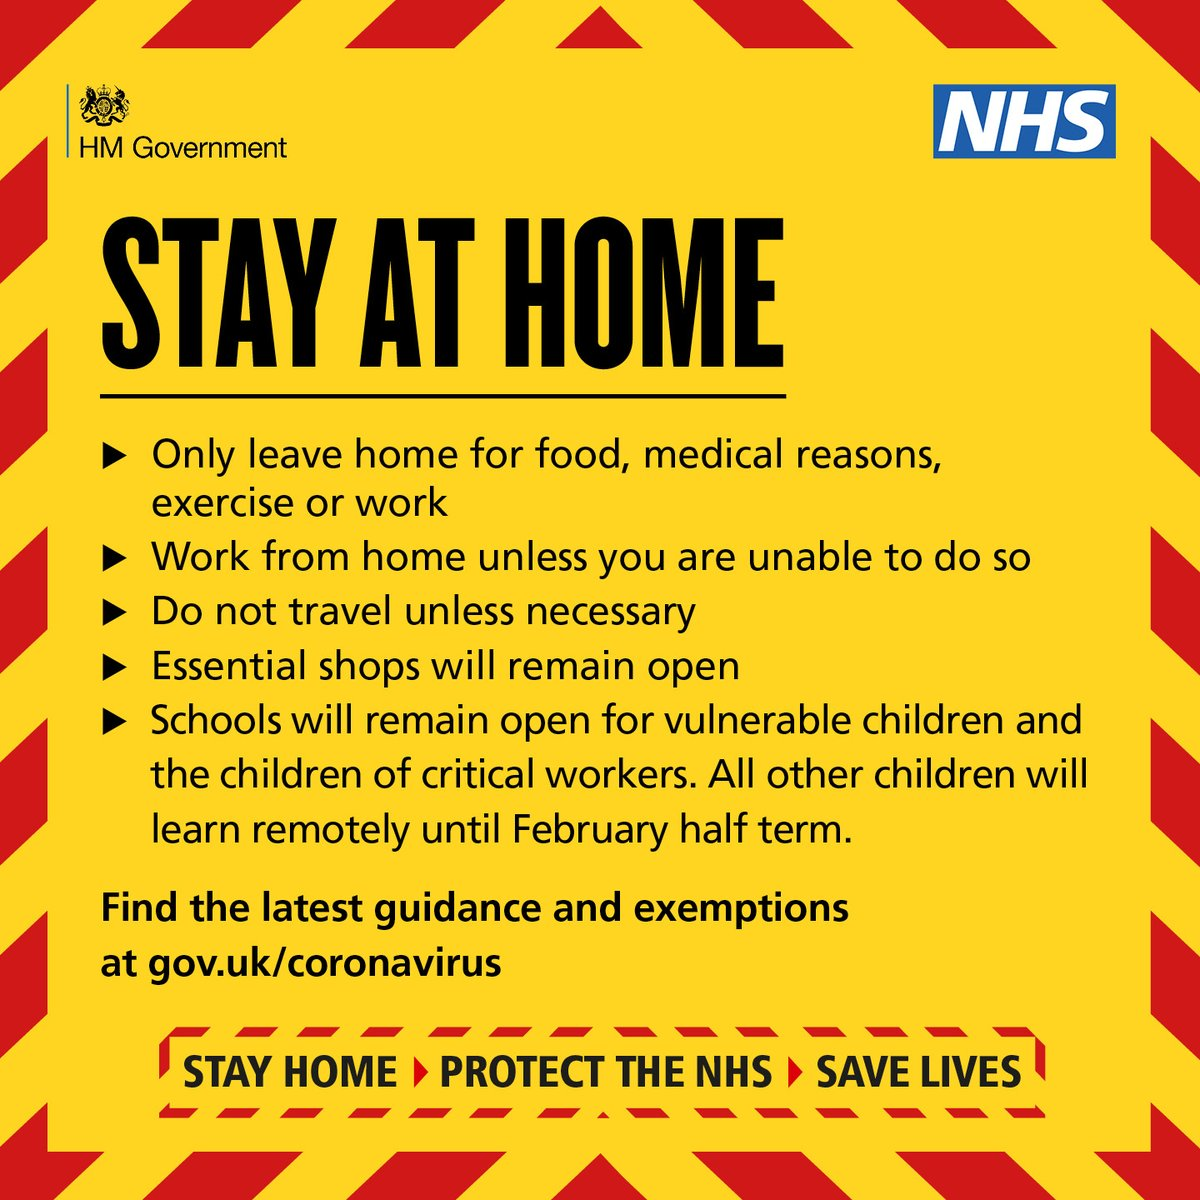 We all need to play our part by staying at home and only leaving for essential reasons #COVID19 #NationalLockdown #StayatHome